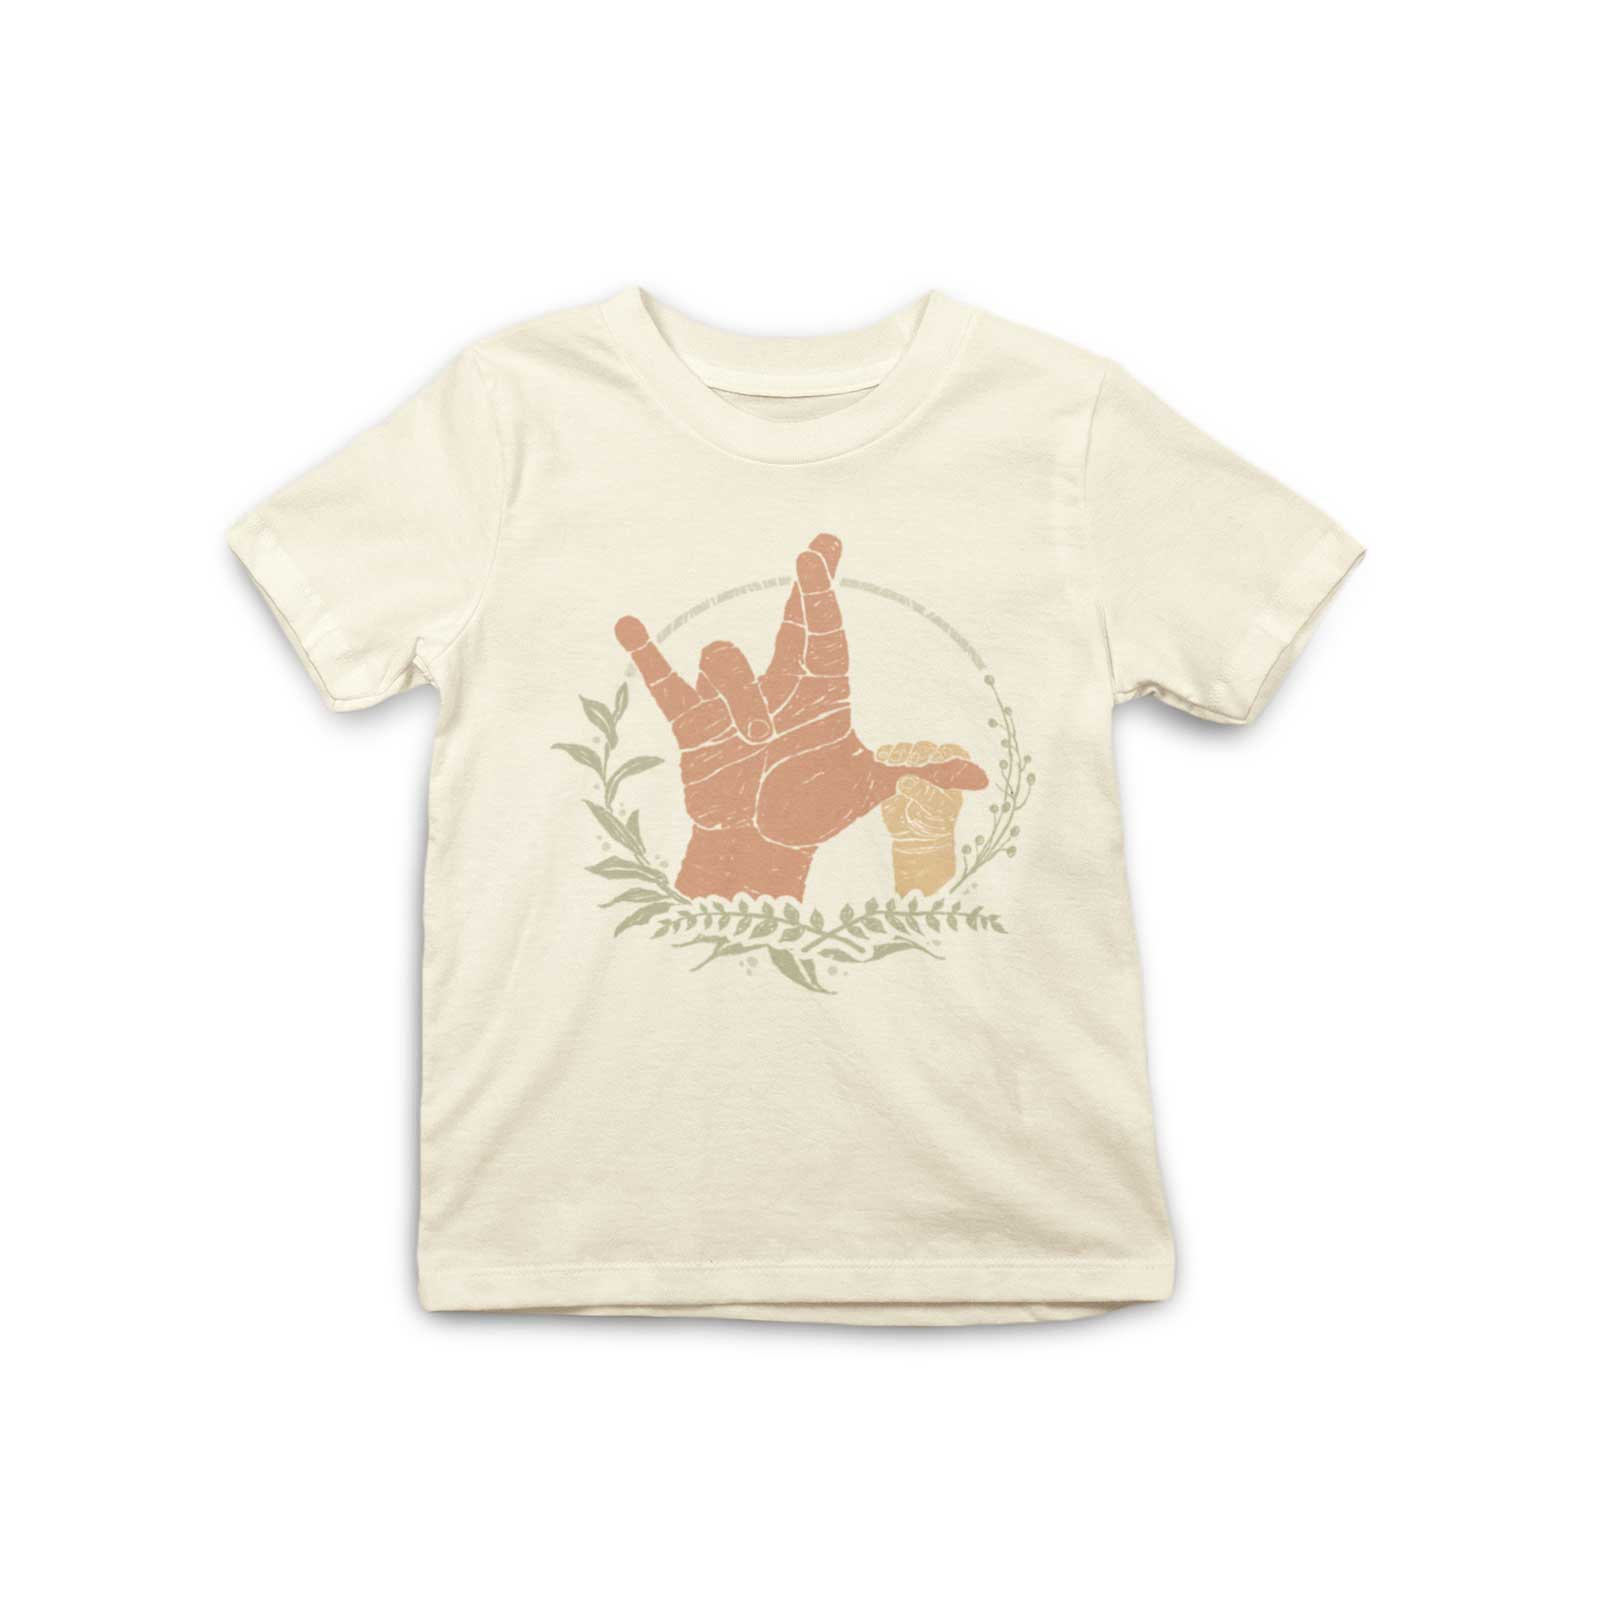 Finer & Dandy ASL Tee